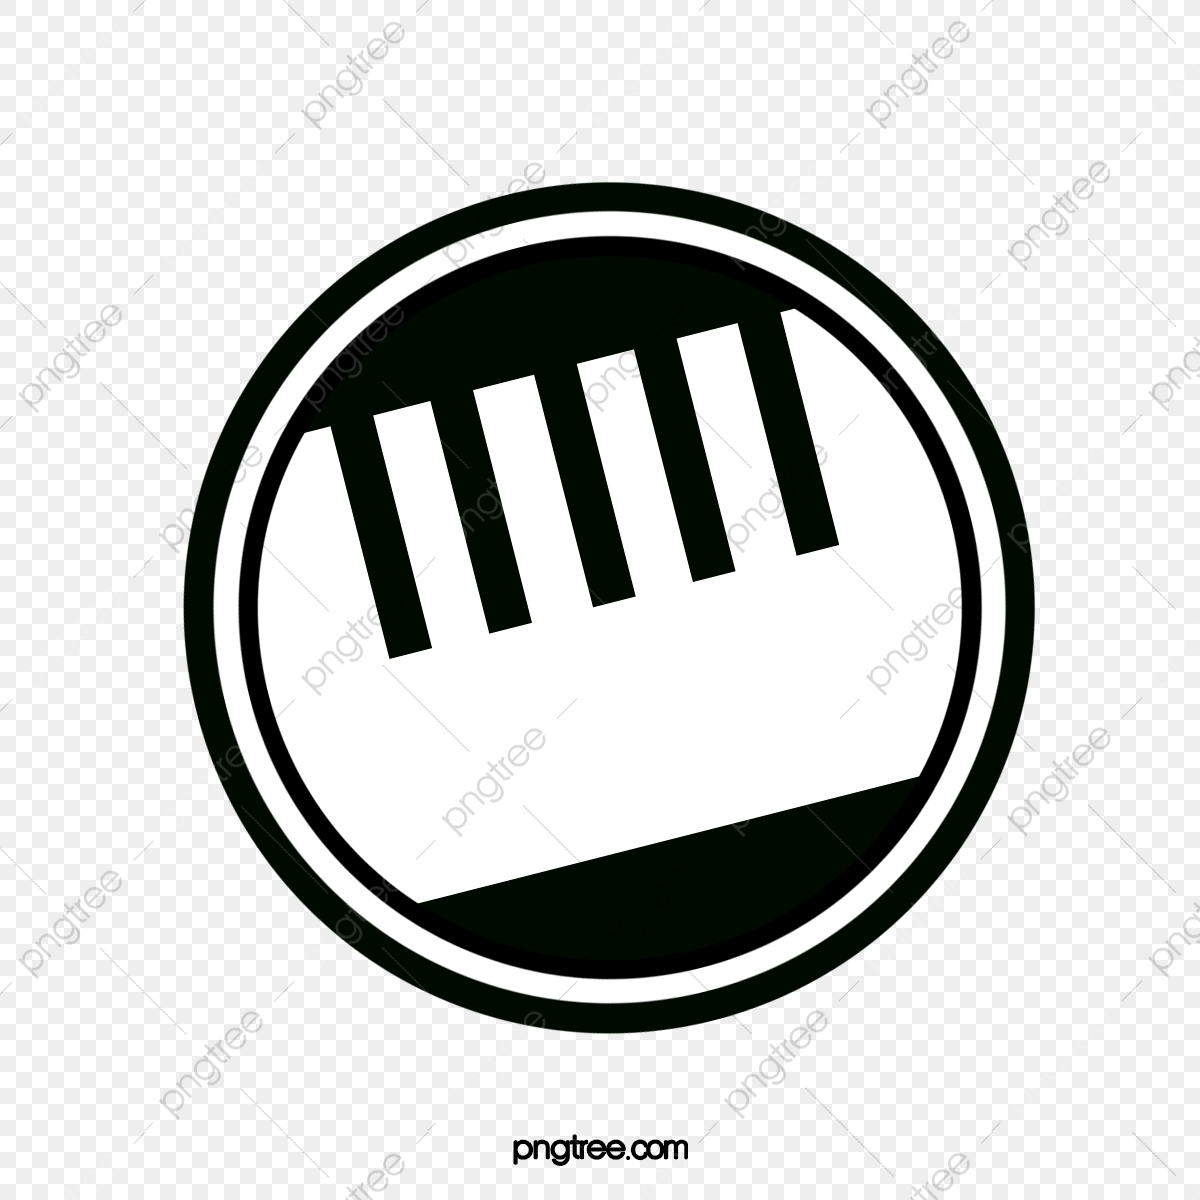 music logo png vector psd and clipart with transparent background for free download pngtree https pngtree com freepng black and white keyboard music logo 3359793 html